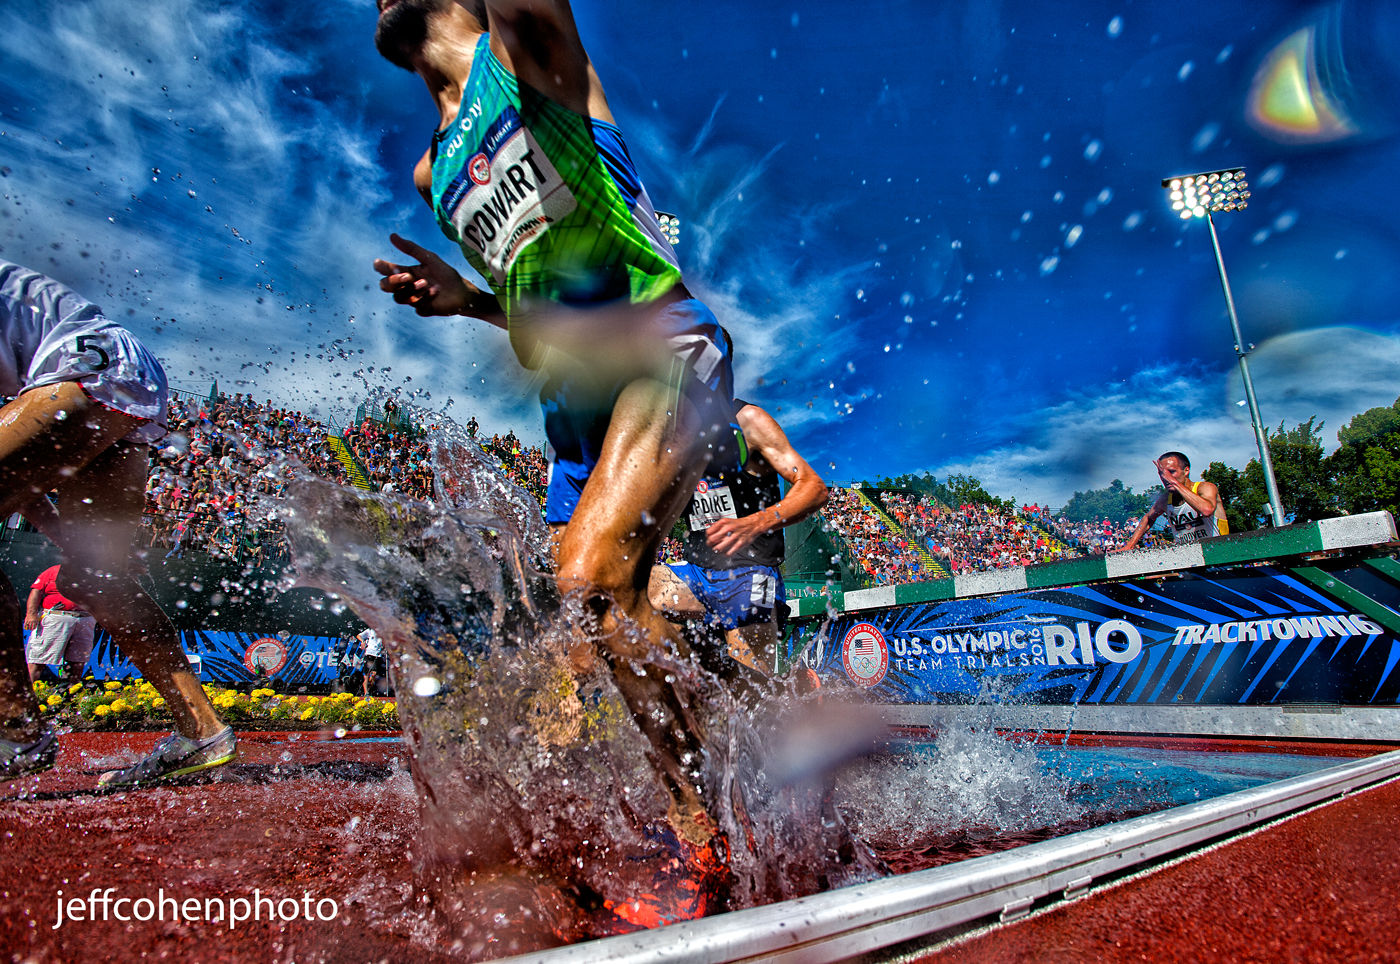 1r2016_oly_trials_day_4_steeple_splash_jeff_cohen_photo_17524_web.jpg